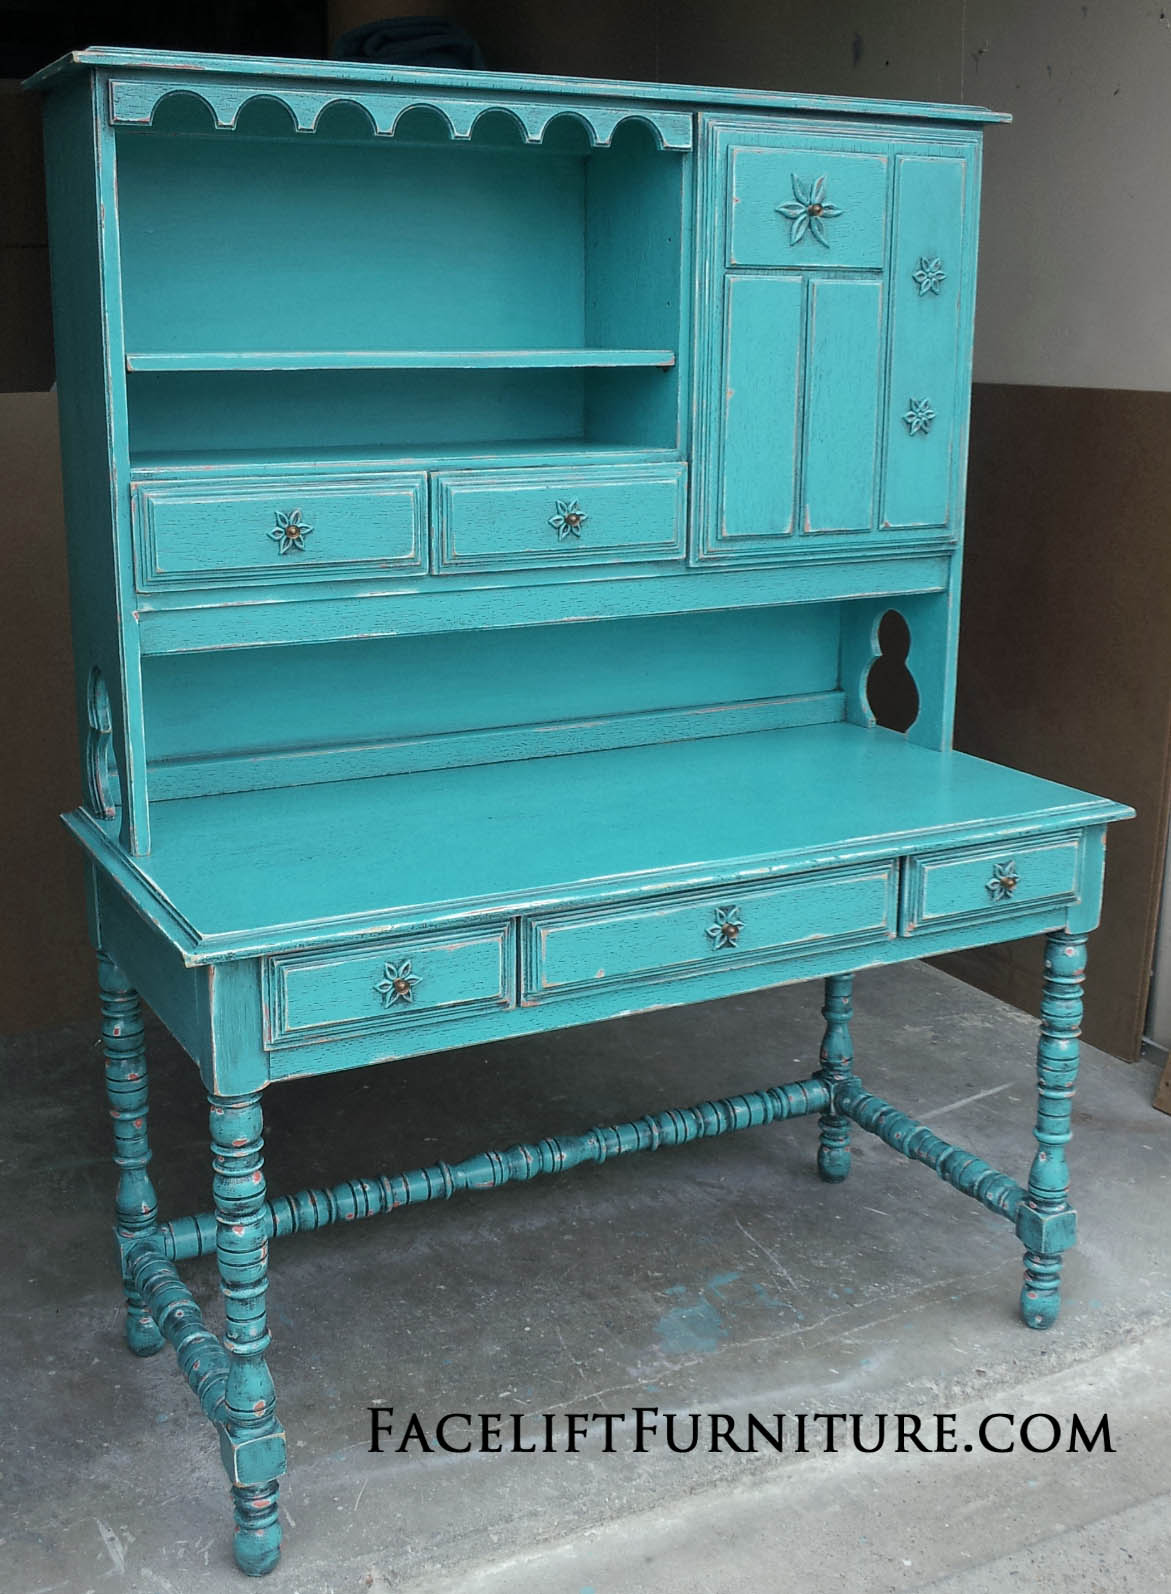 For More Inspiration, Visit Our Turquoise Refinished Furniture Collection.